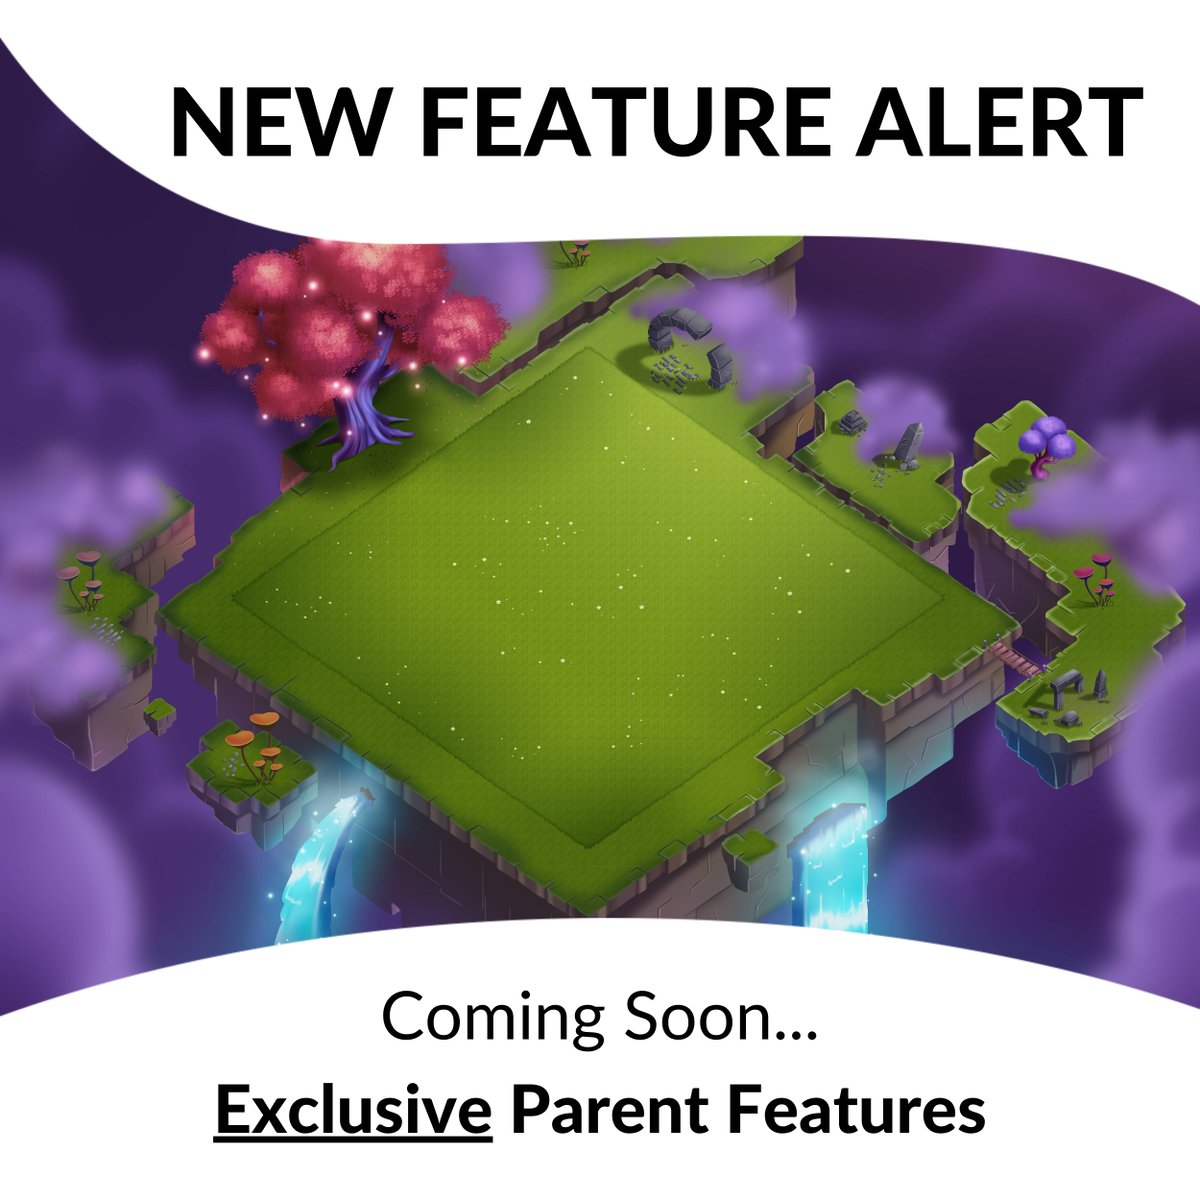 #NewFeatureAlert We're doing big things behind the scenes... stay tuned in for new and exciting additions coming to Dreamscape!  #education #readingisfun #books #EdTech #Dreamscape https://t.co/gZvXfQOVZV